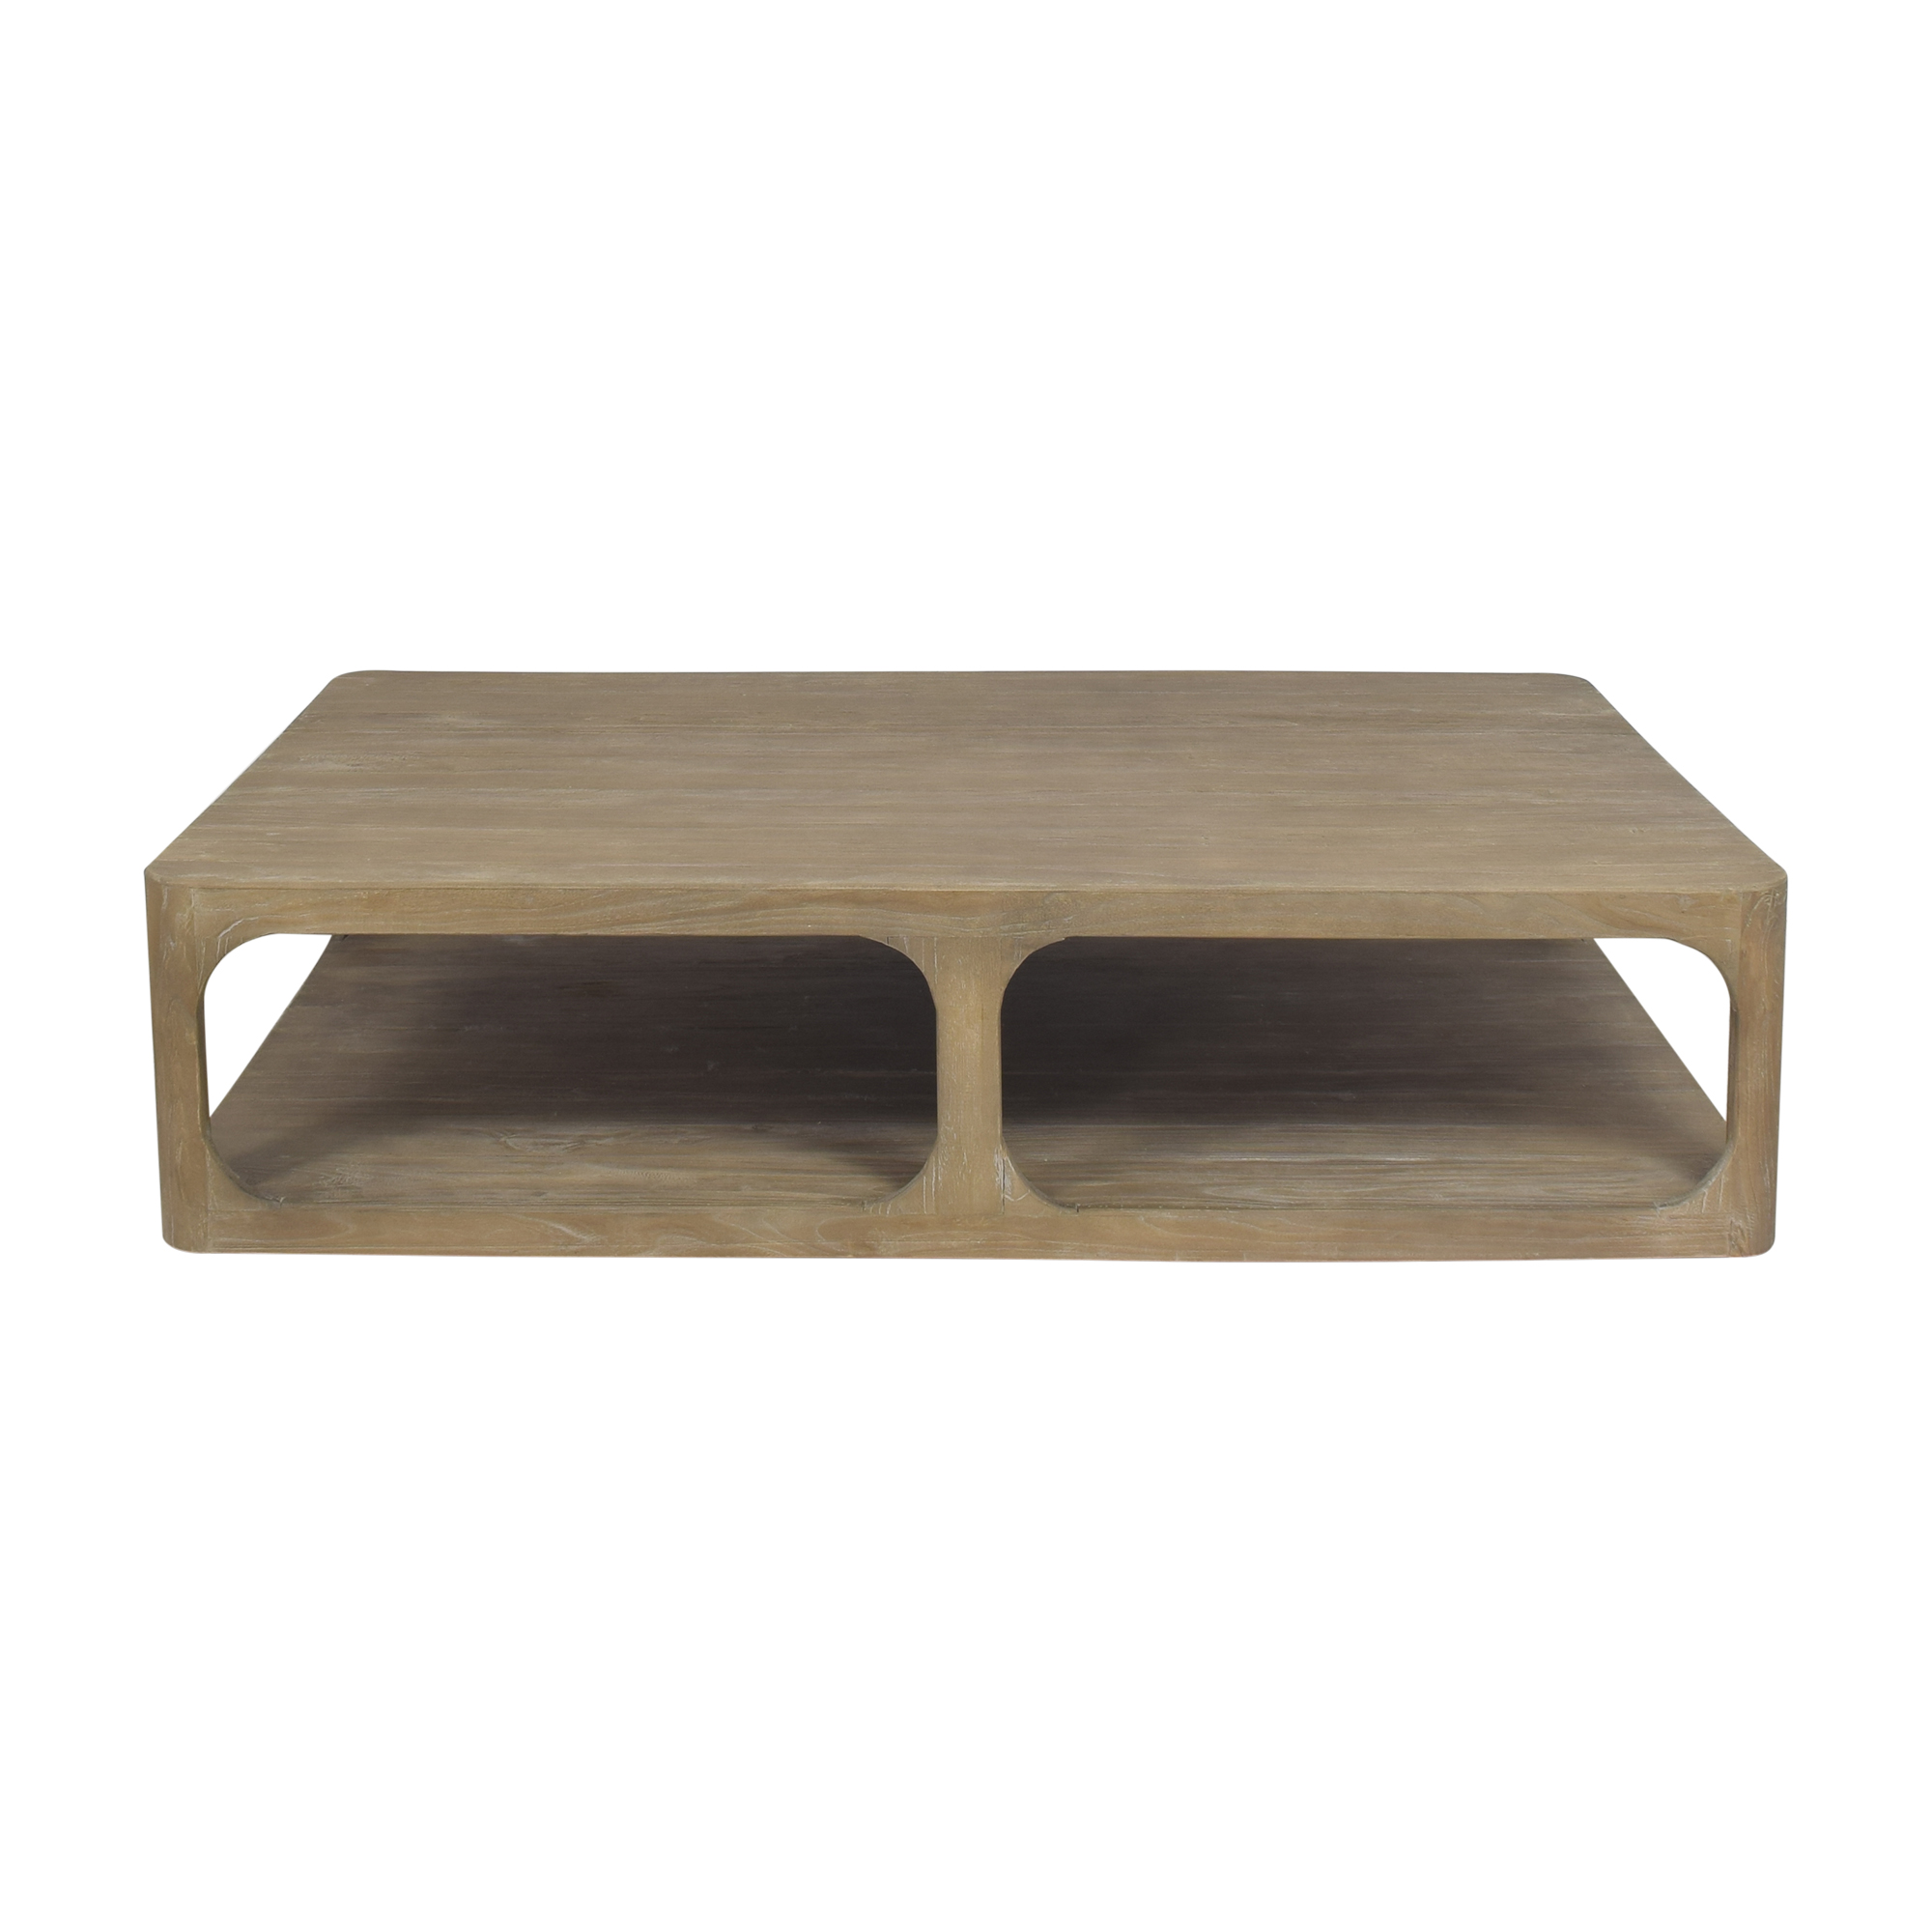 Restoration Hardware Restoration Hardware Martens Coffee Table Tables